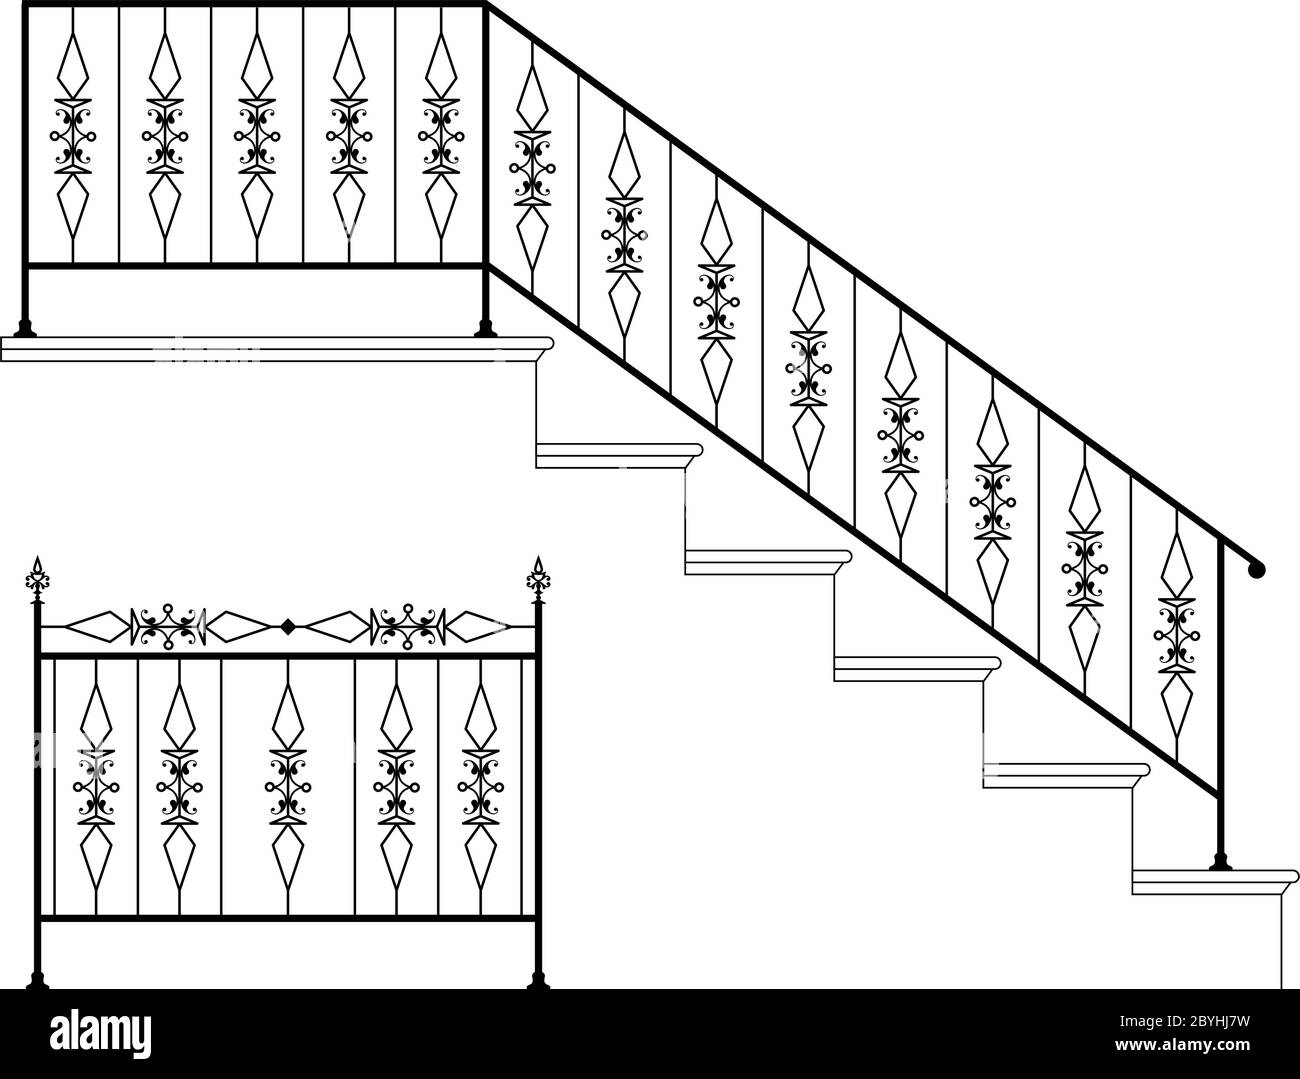 Wrought Iron Stair Railing Design Vector Art Stock Vector Image   Stairs Railing Designs In Iron   Rot Iron Staircase   Vertical   Stairway   Grill   Modern